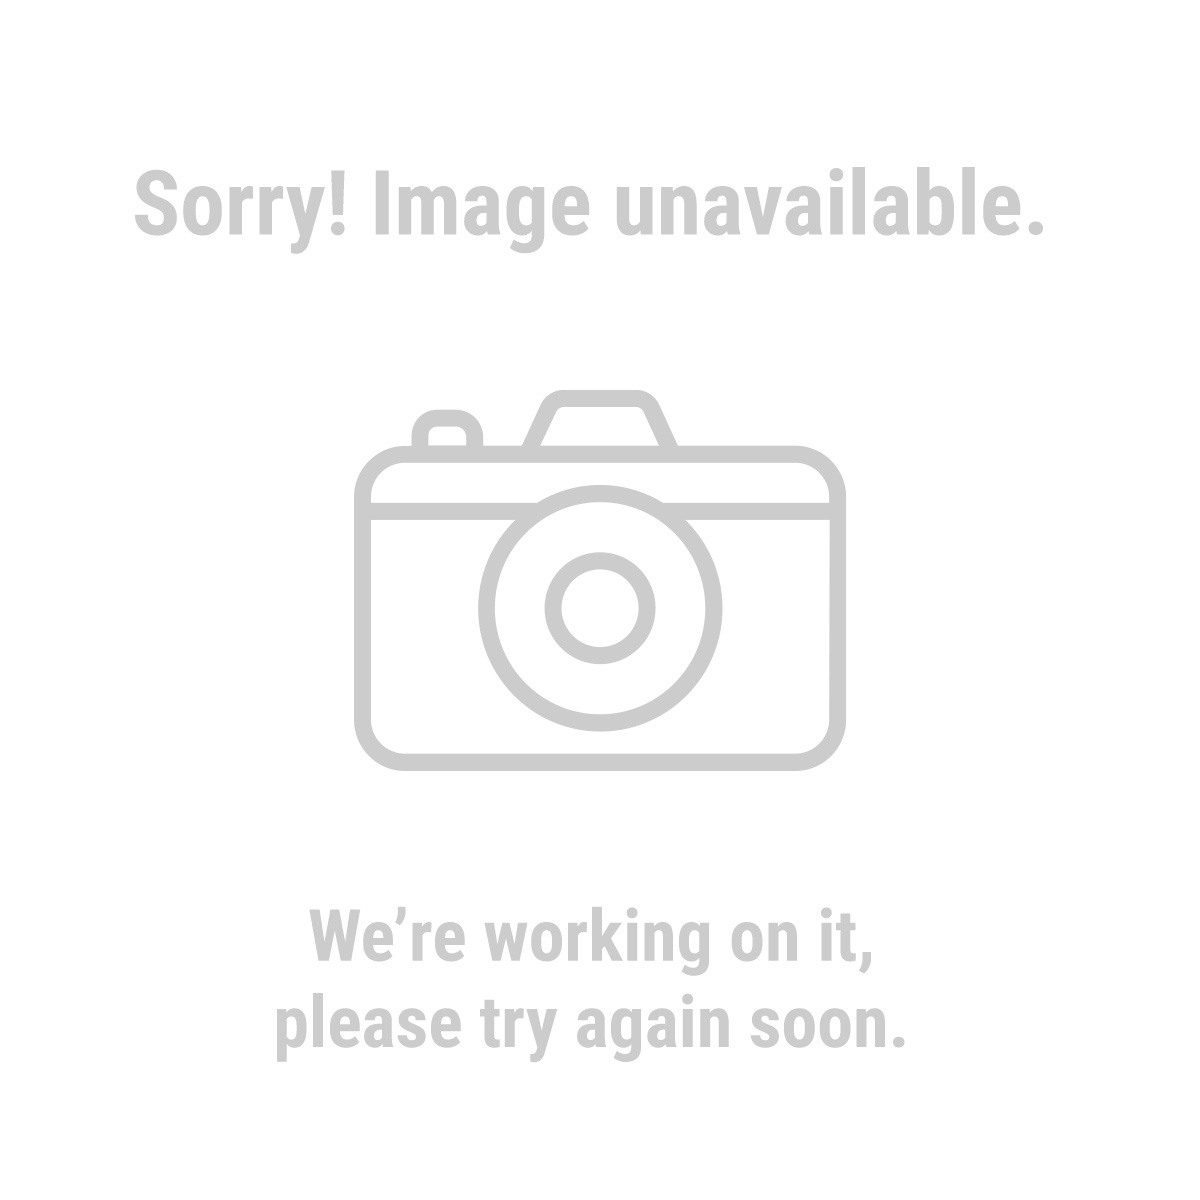 403 Inside Track Club Membership & $10 Gift Card